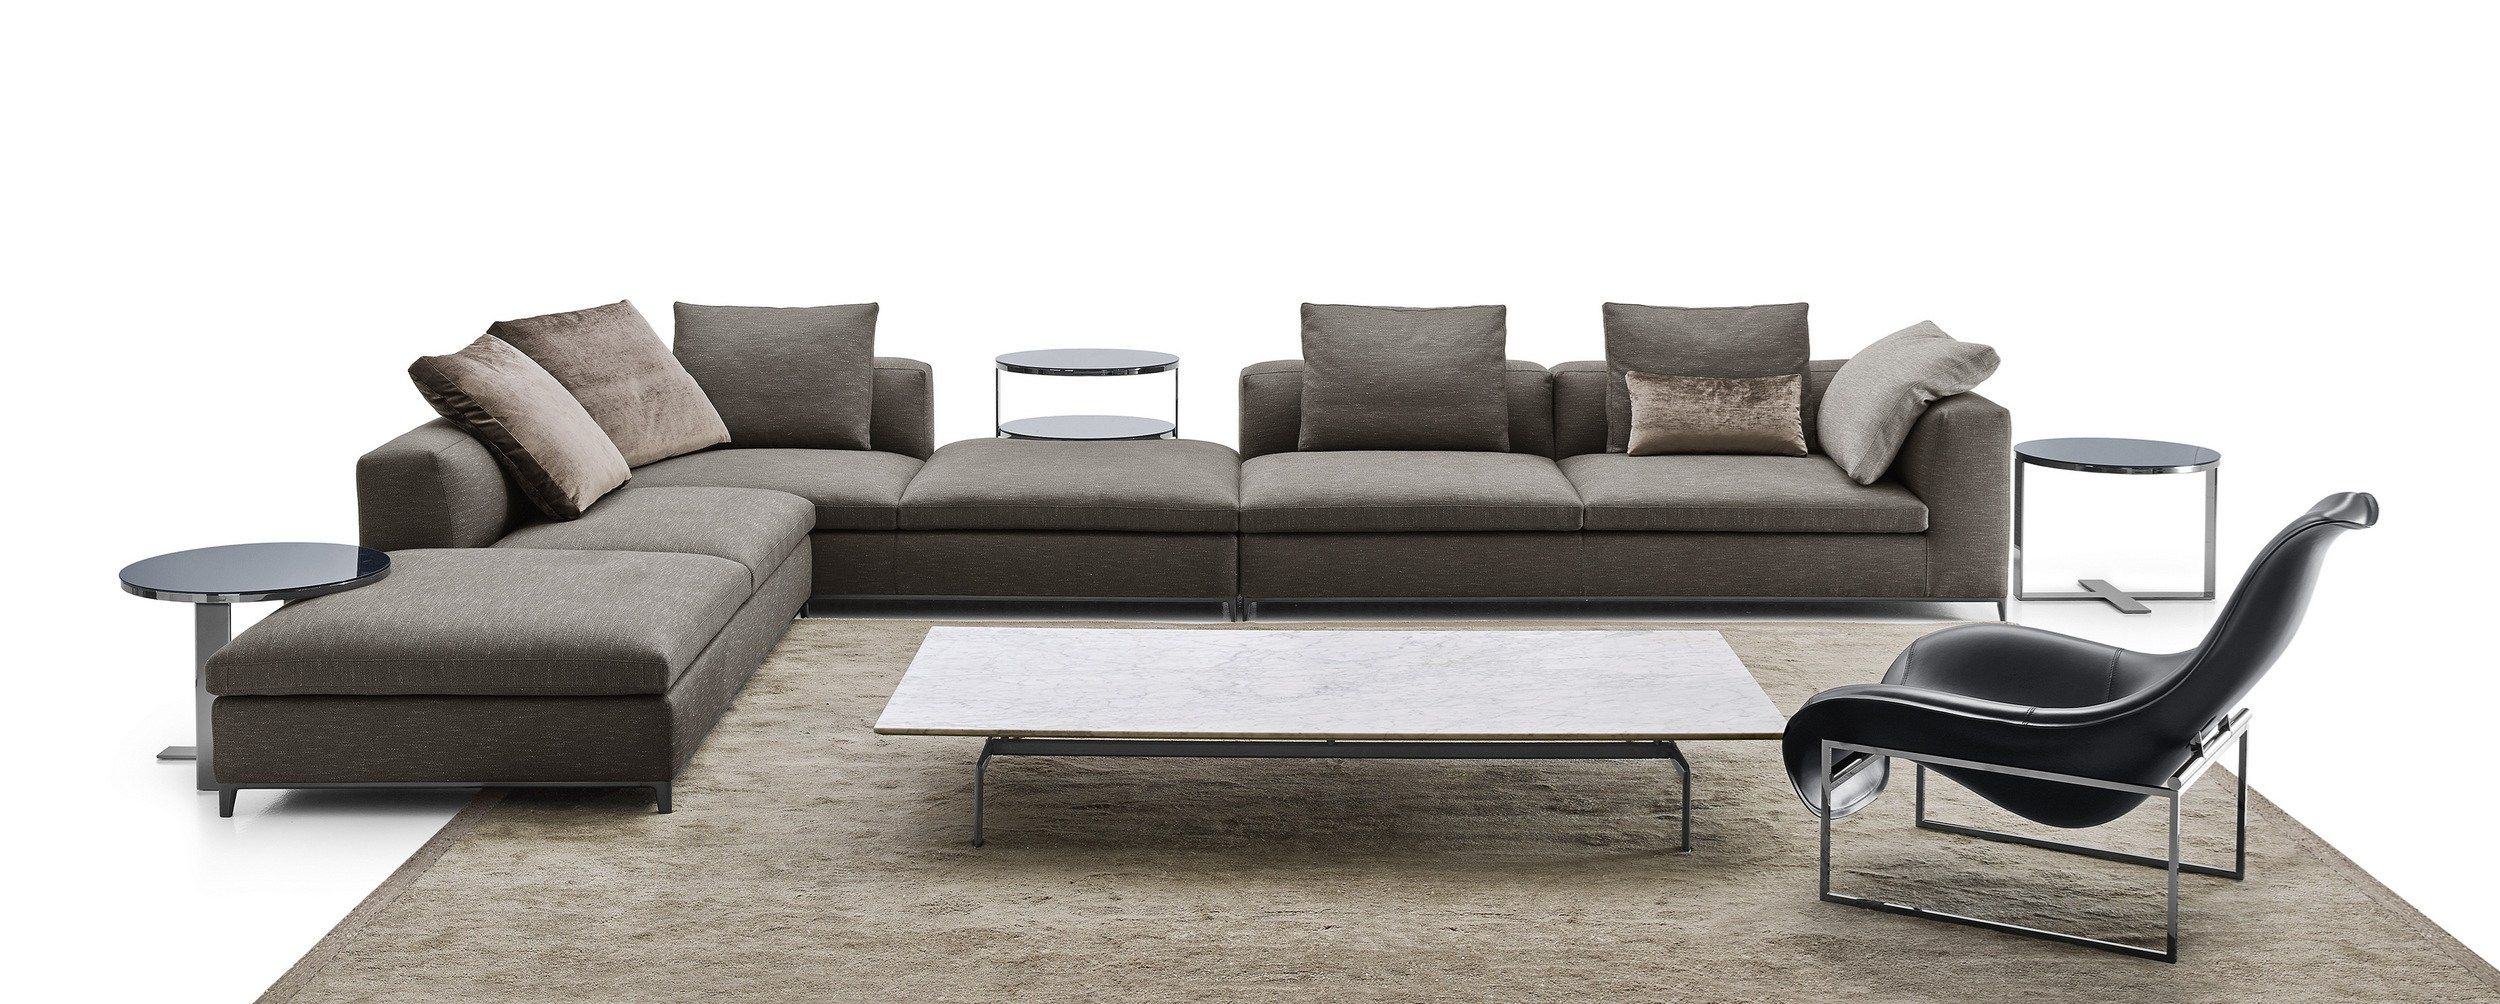 Corner Sectional Upholstered Fabric Sofa Michel Club Michel